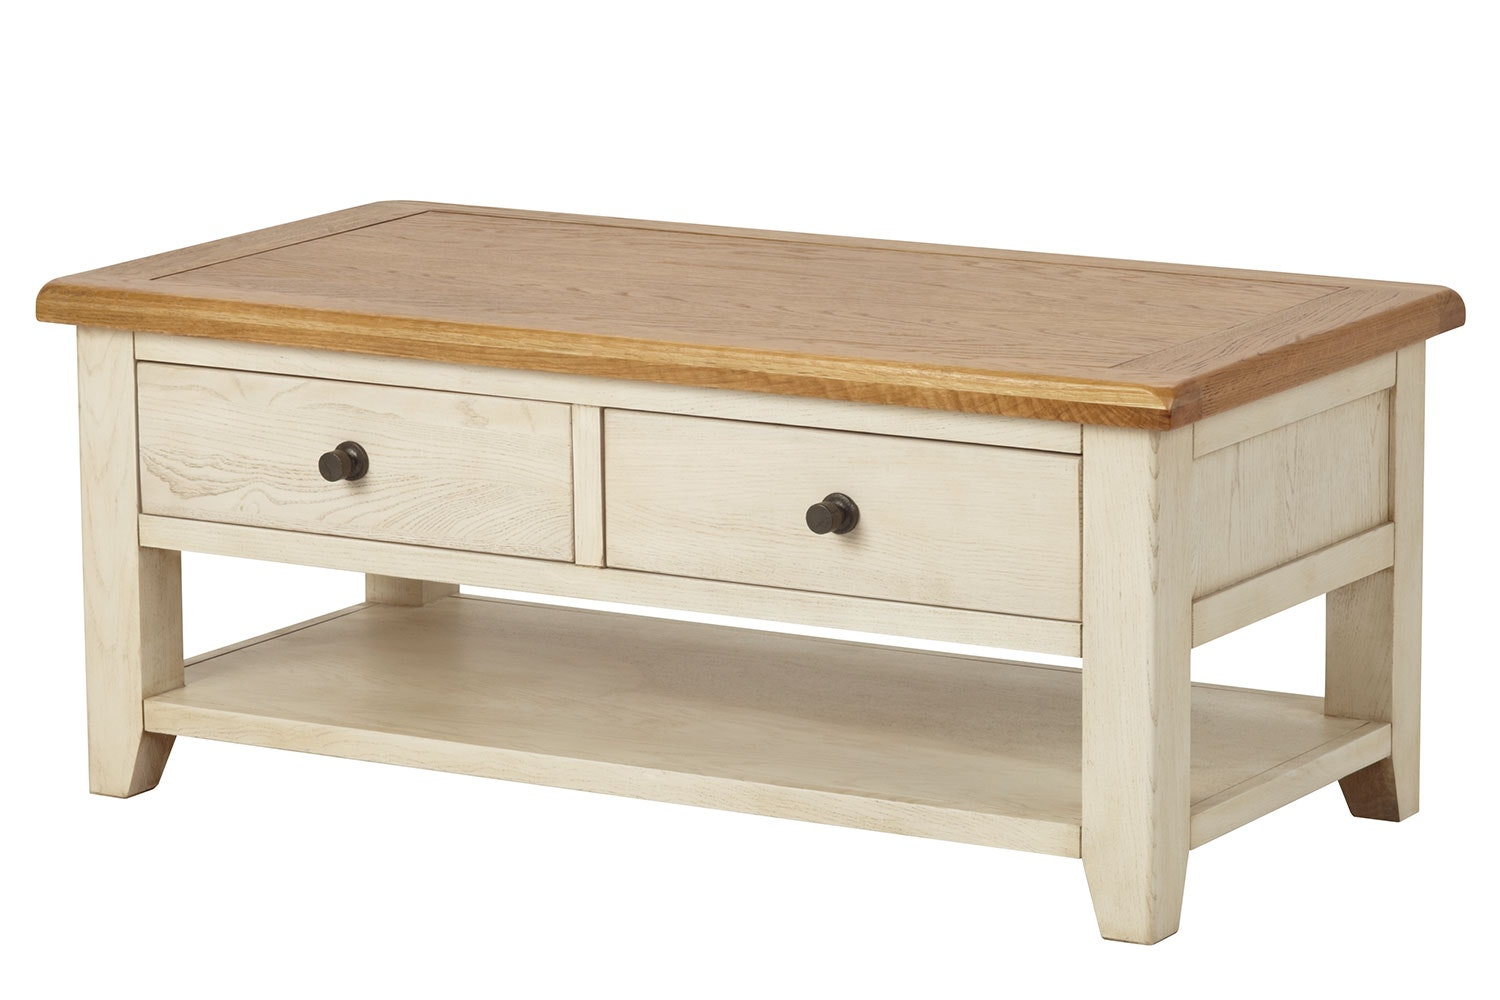 Mansfield Coffee Table By Debonaire Furniture | Harvey Norman New Zealand